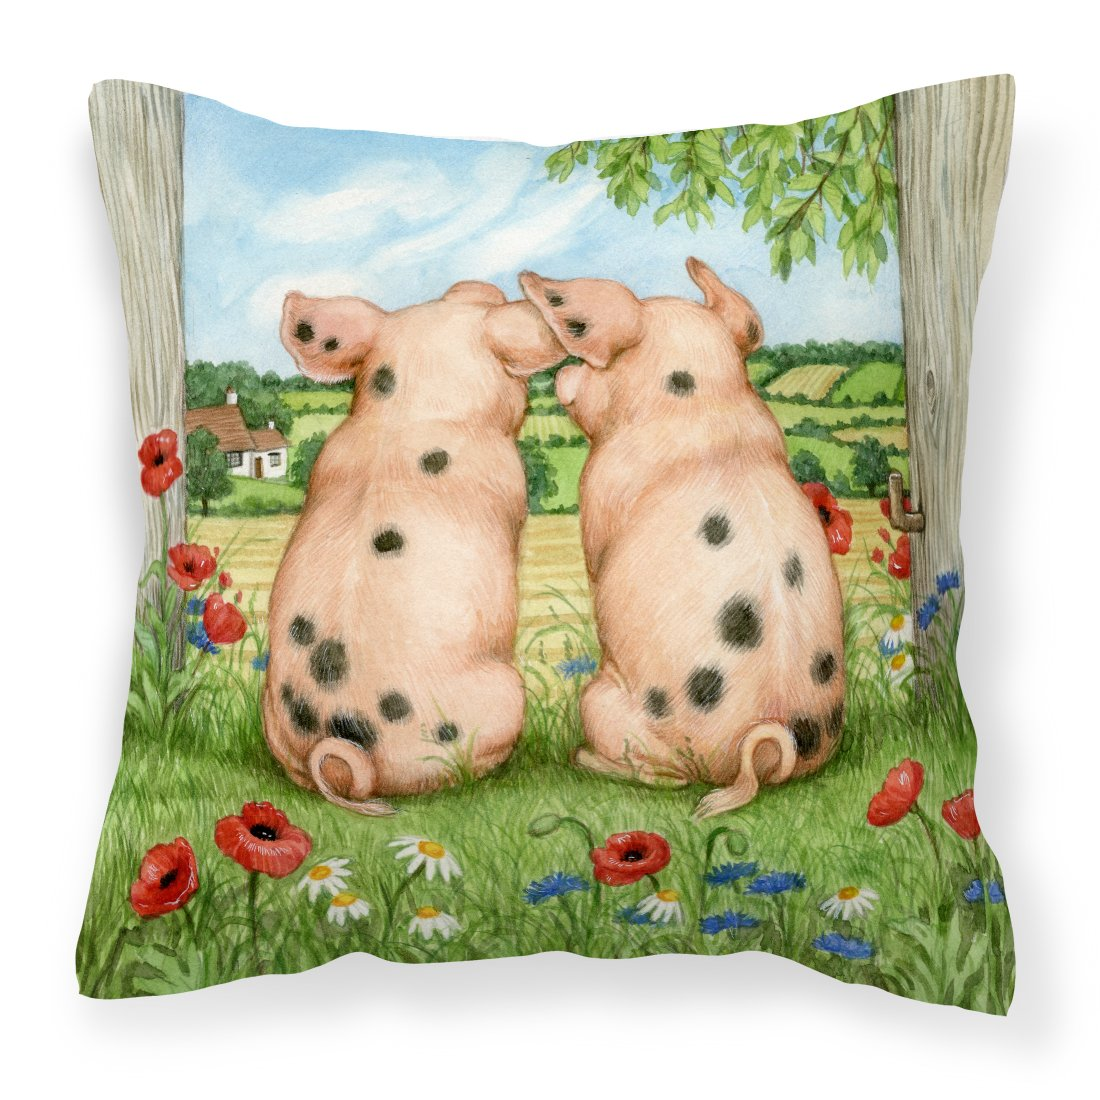 Pigs Side By Side by Debbie Cook Canvas Decorative Pillow by Caroline's Treasures